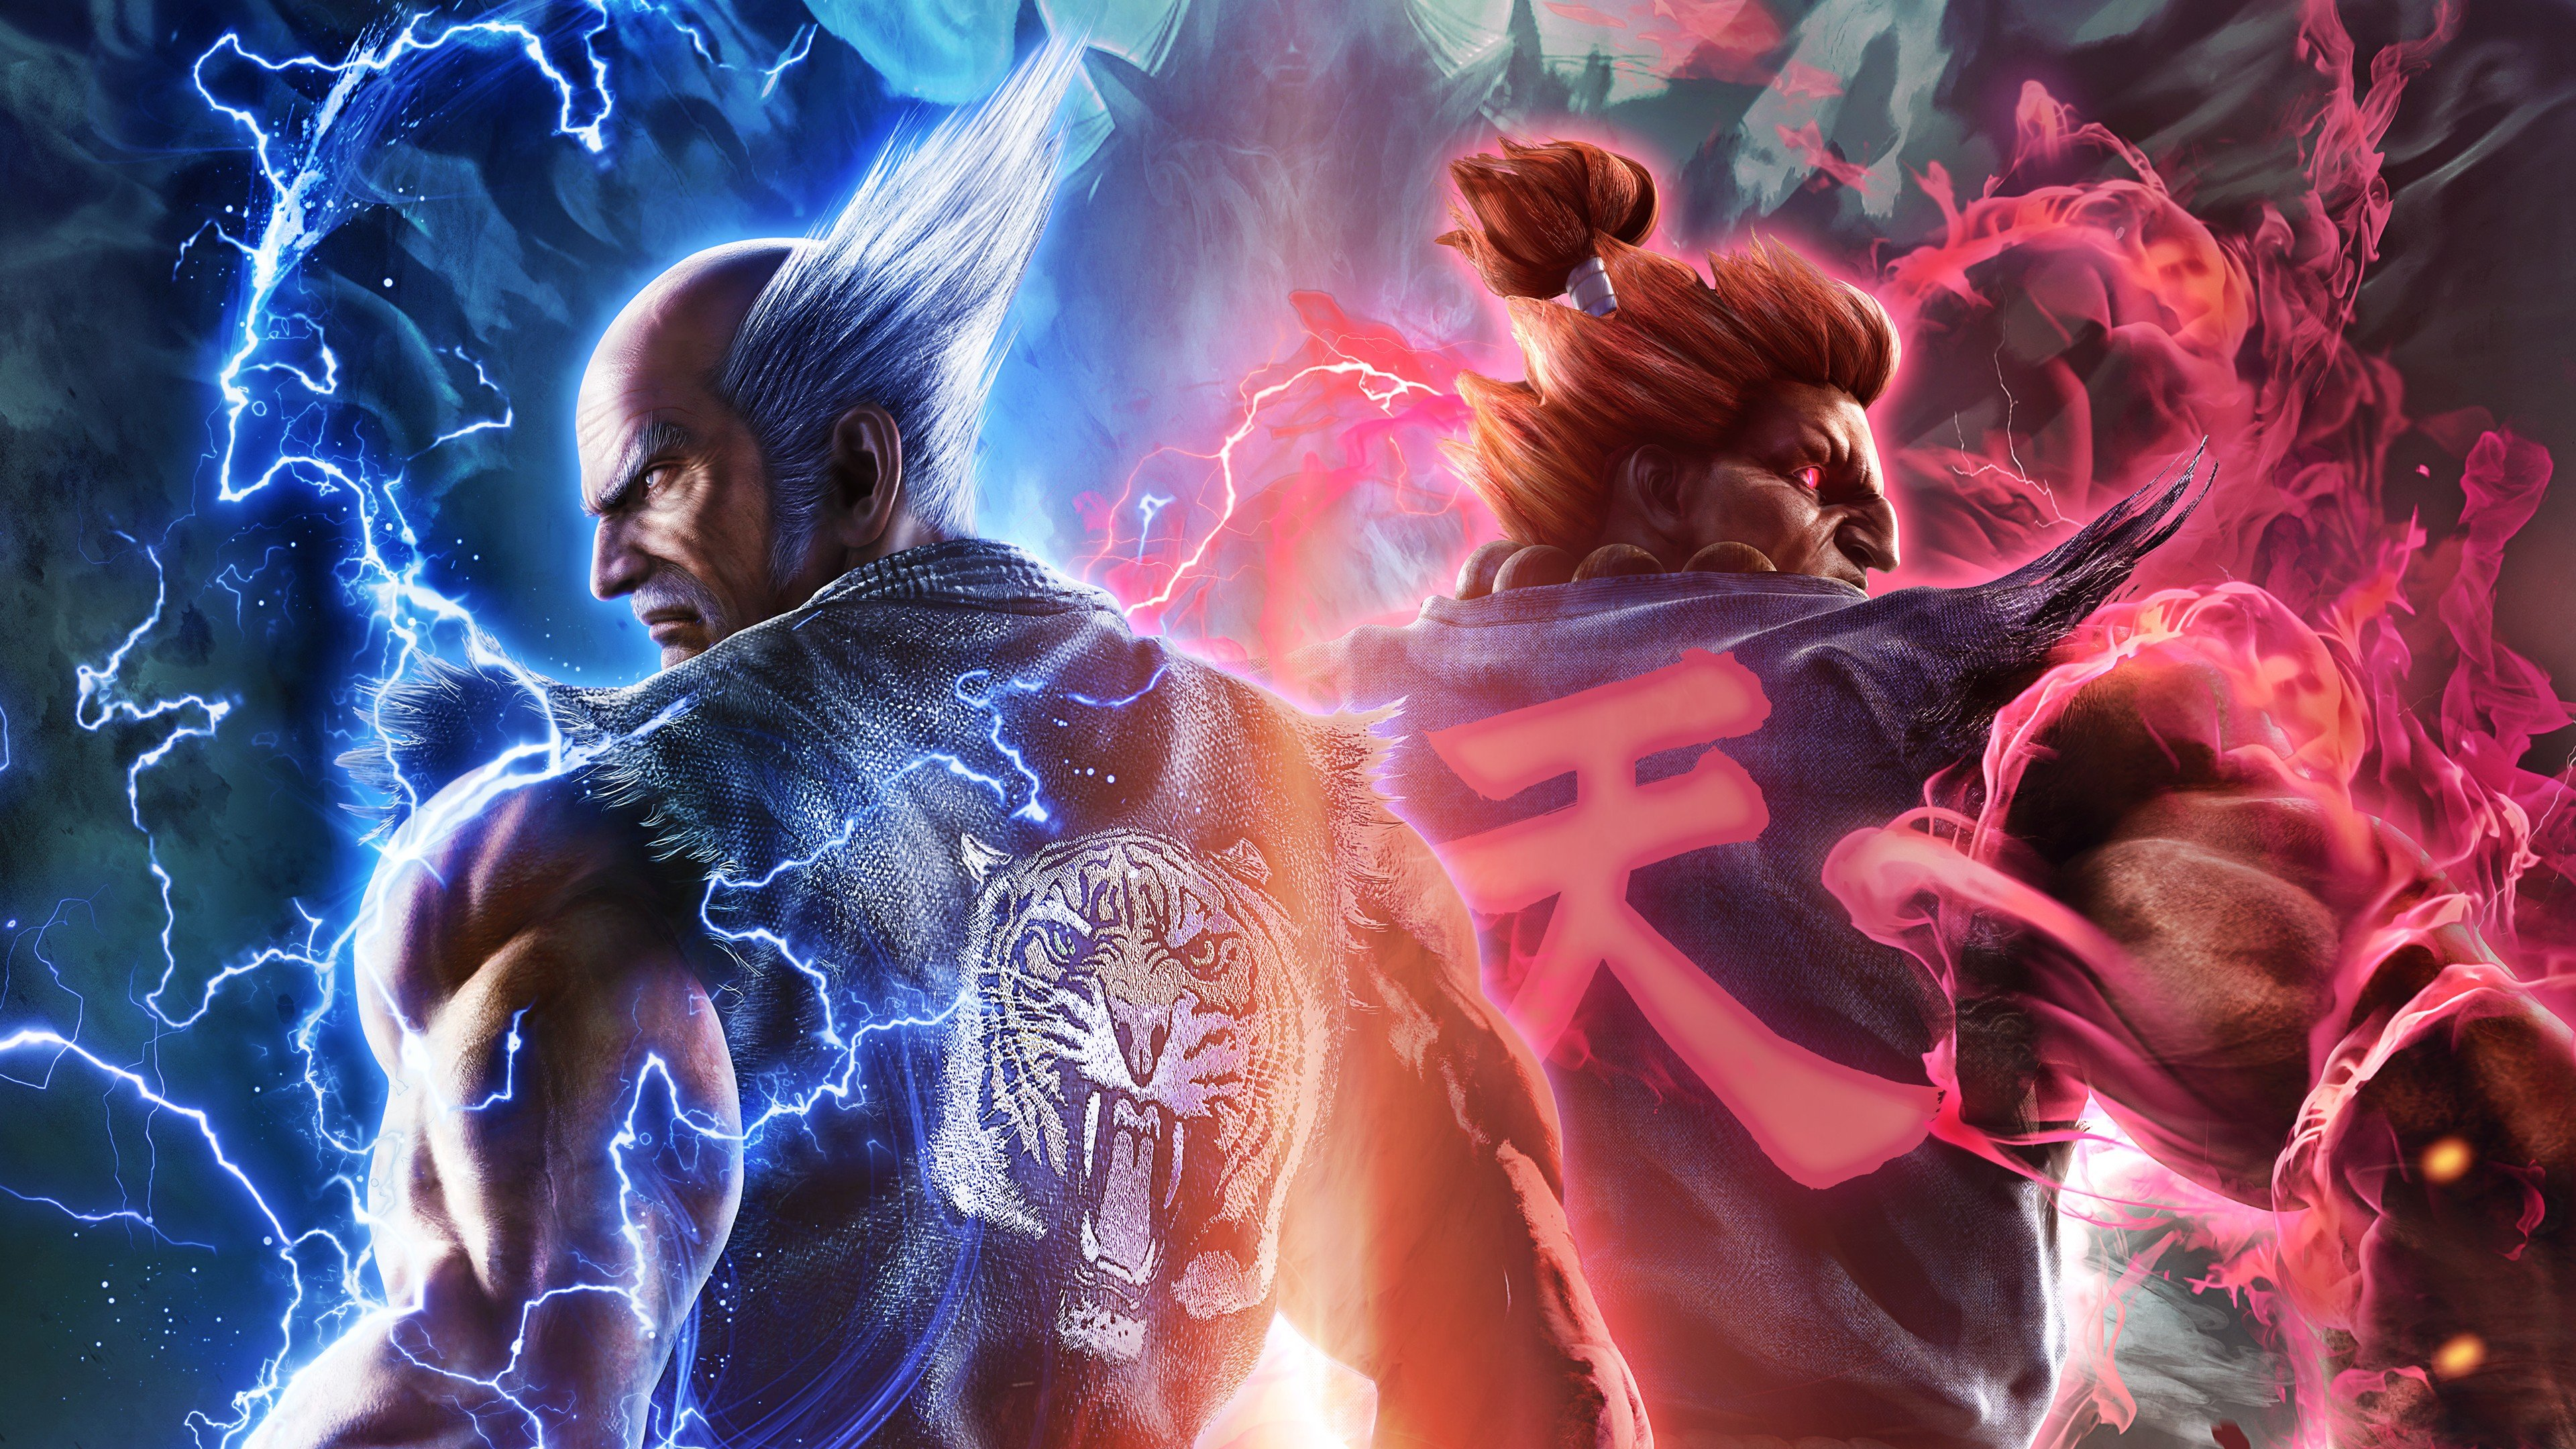 Best Tekken 7 Wallpaper Id 379873 For High Resolution 4k Pc